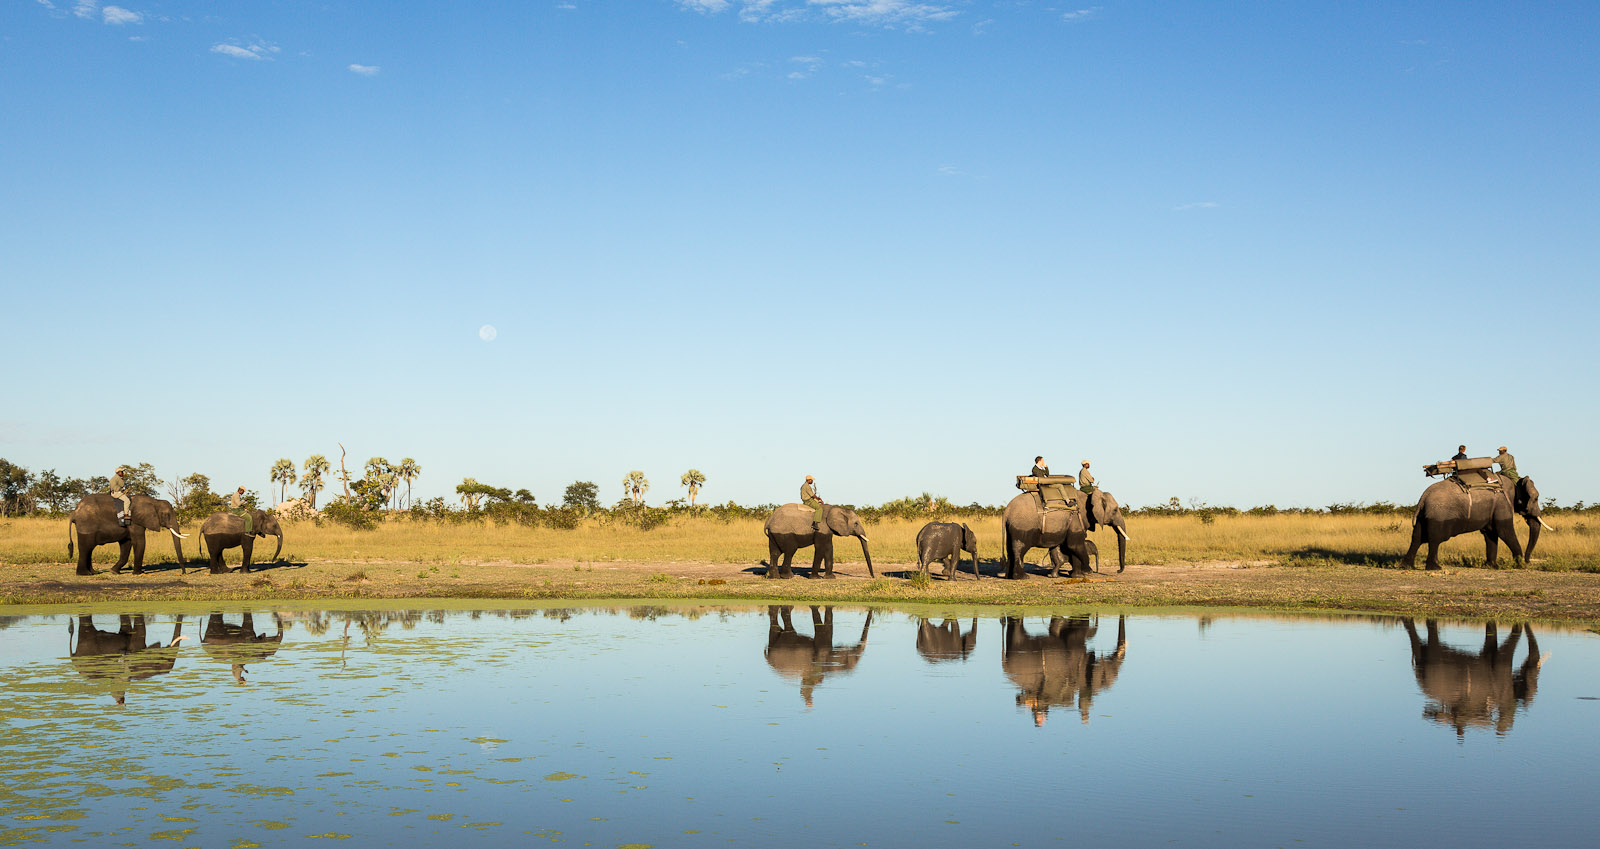 A parade of Abu Camps elephants heading out to early morning feed in the Okavango Delta, Botswana. Guests at the camp can ride the elephants or walk with them to their grazing area in the morning or when returning from the grazing area to the boma in the evening. Cliff dwelling bee-eaters on the Zambezi River in Zambia just north of Vicotria Falls, Africa. Photo © 2012 Jay Graham, all rights reserved